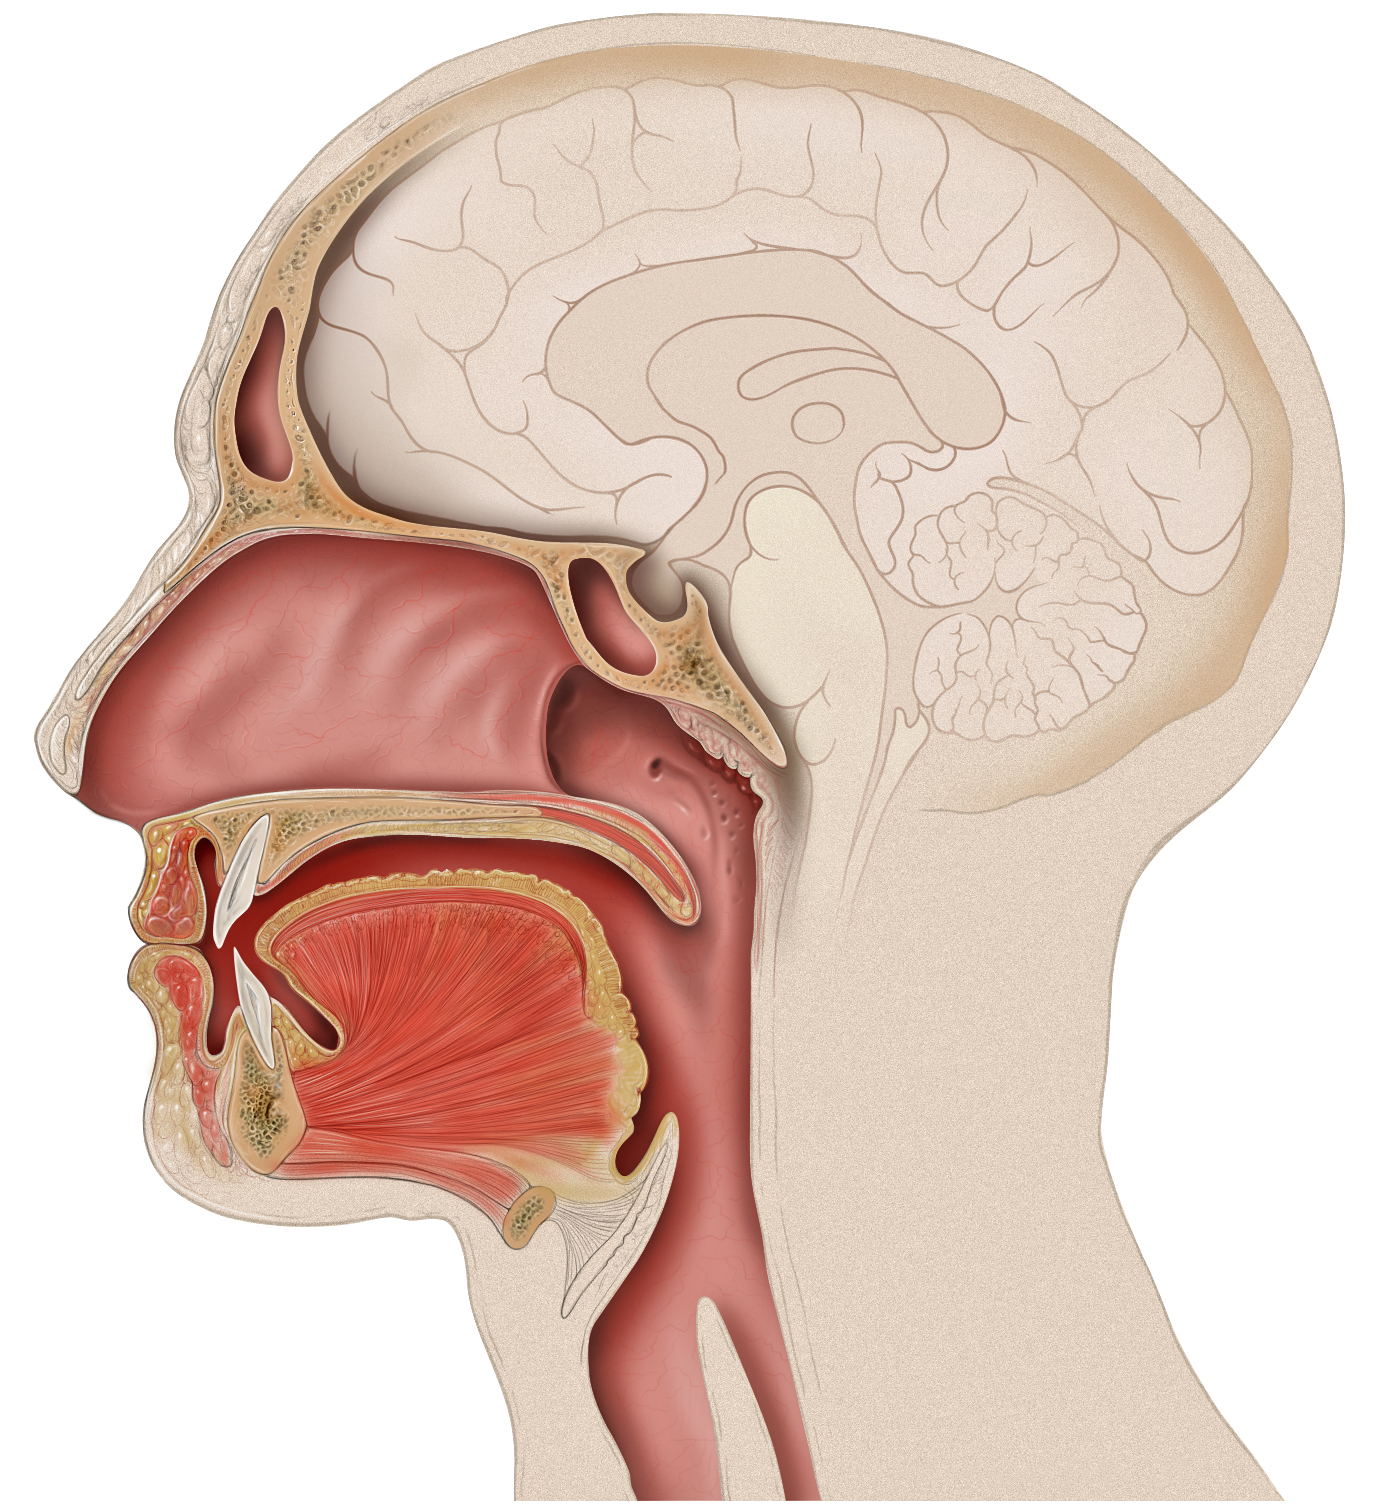 http://upload.wikimedia.org/wikipedia/commons/5/51/Head_lateral_mouth_anatomy.jpg